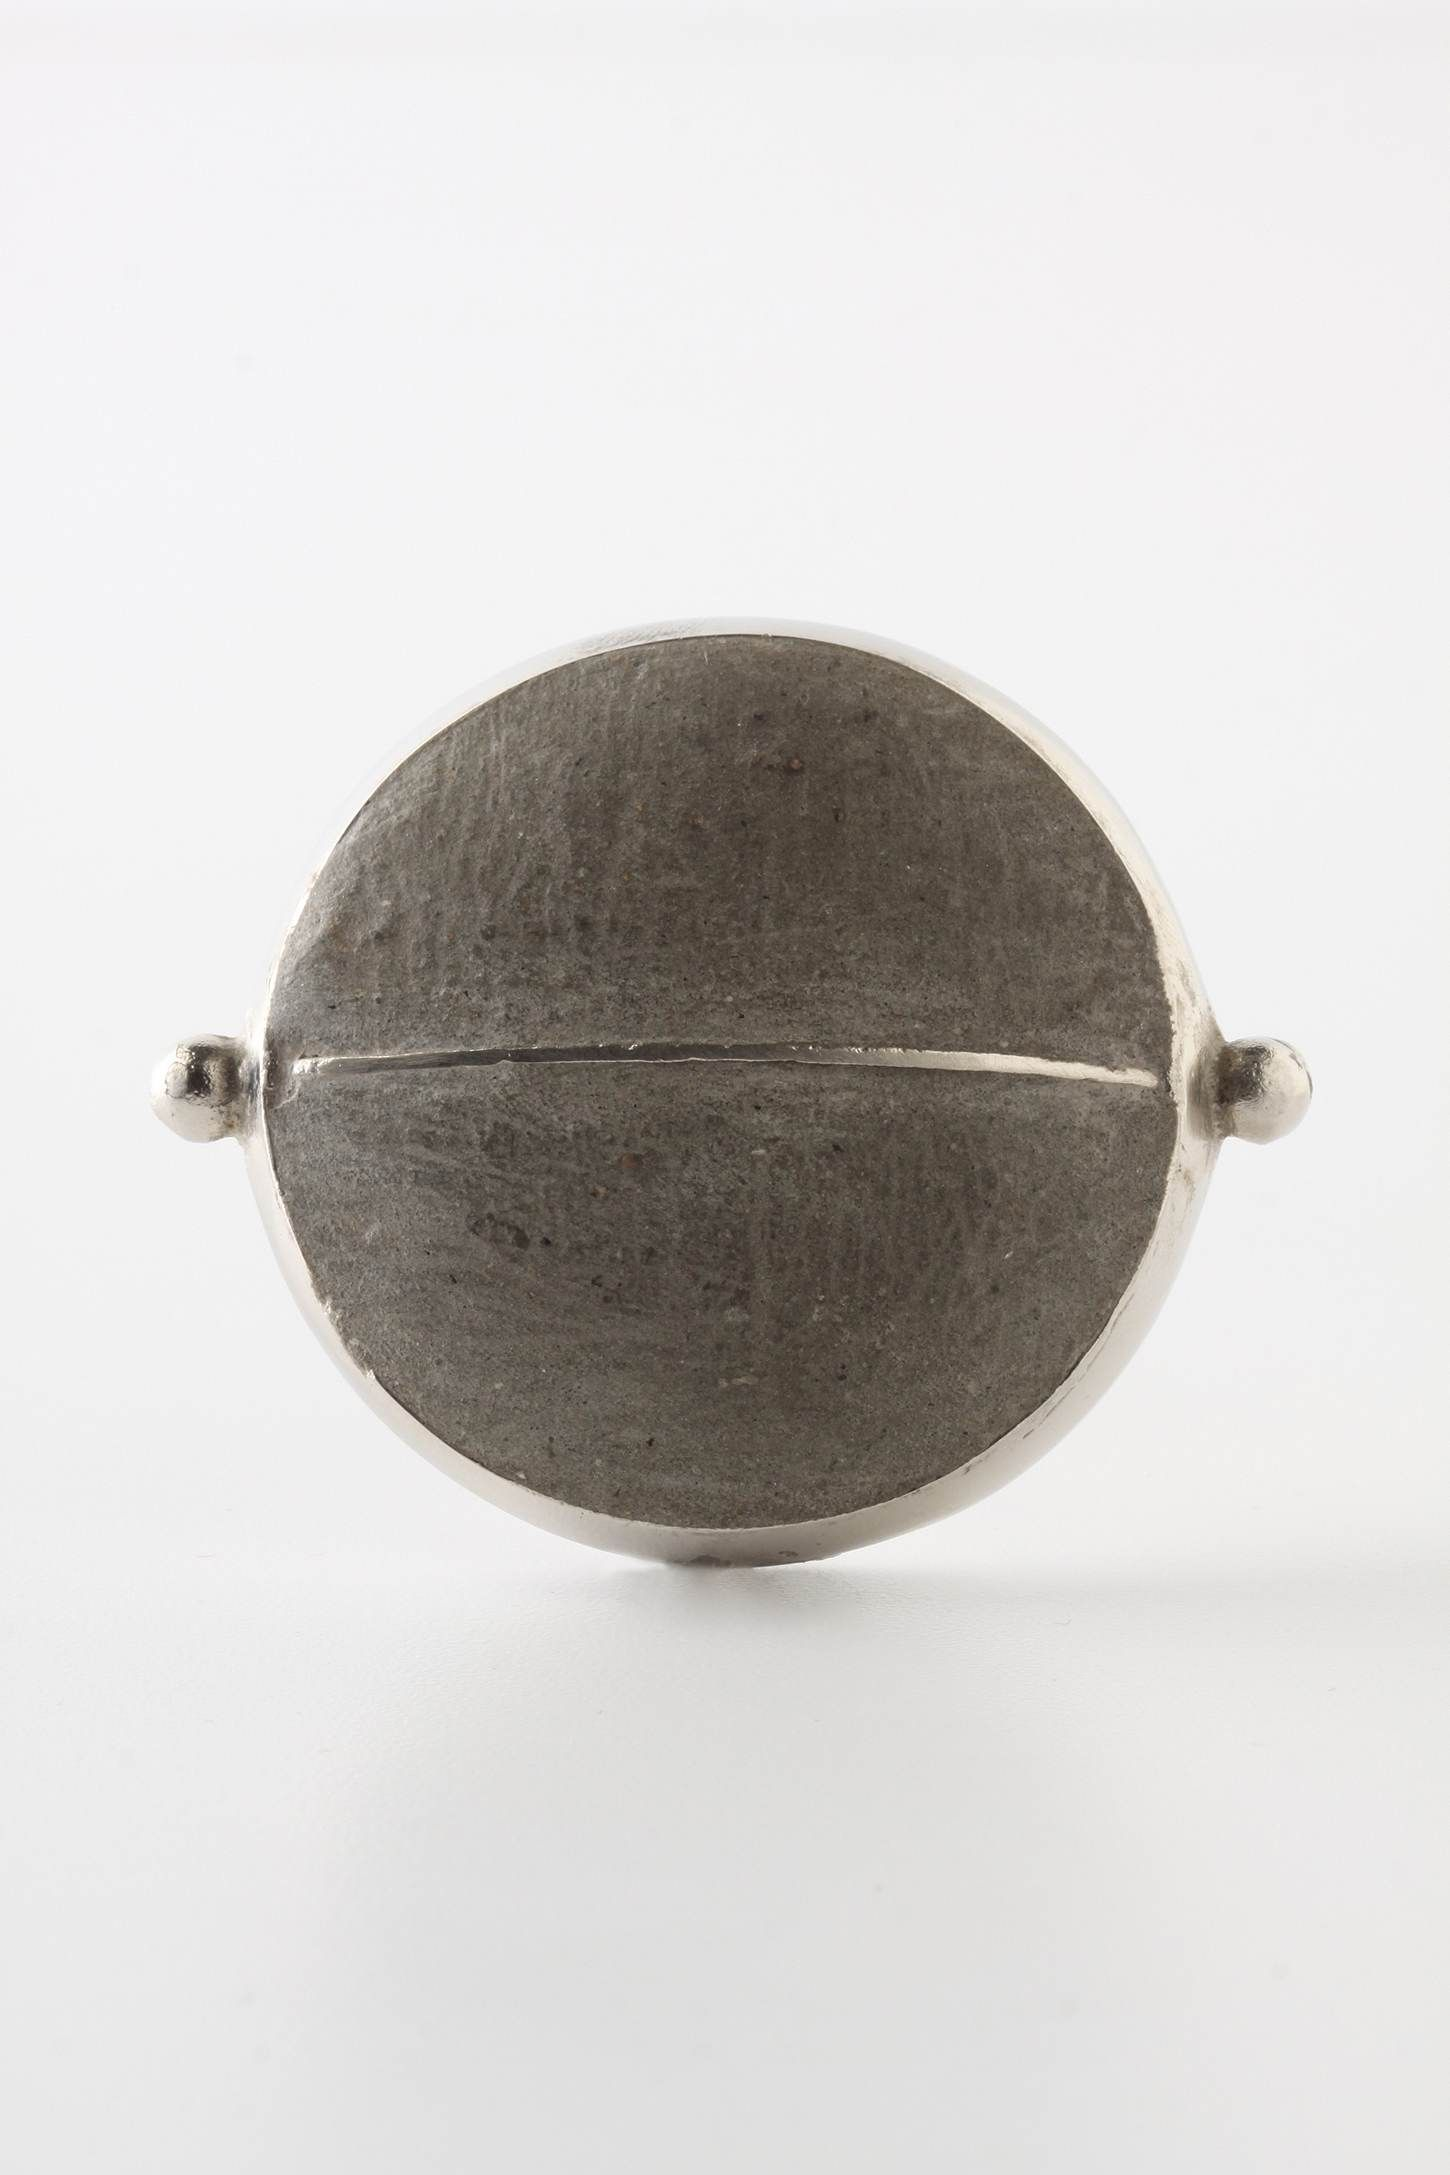 "Door knob A cast-iron frame holds smooth cement slabs, for a sleek, industrial look. Tighten with care   No additional hardware required      Iron, cement, brass      2.25"" diameter      1"" projection      1.75"" bolt can be trimmed to size      Imported"